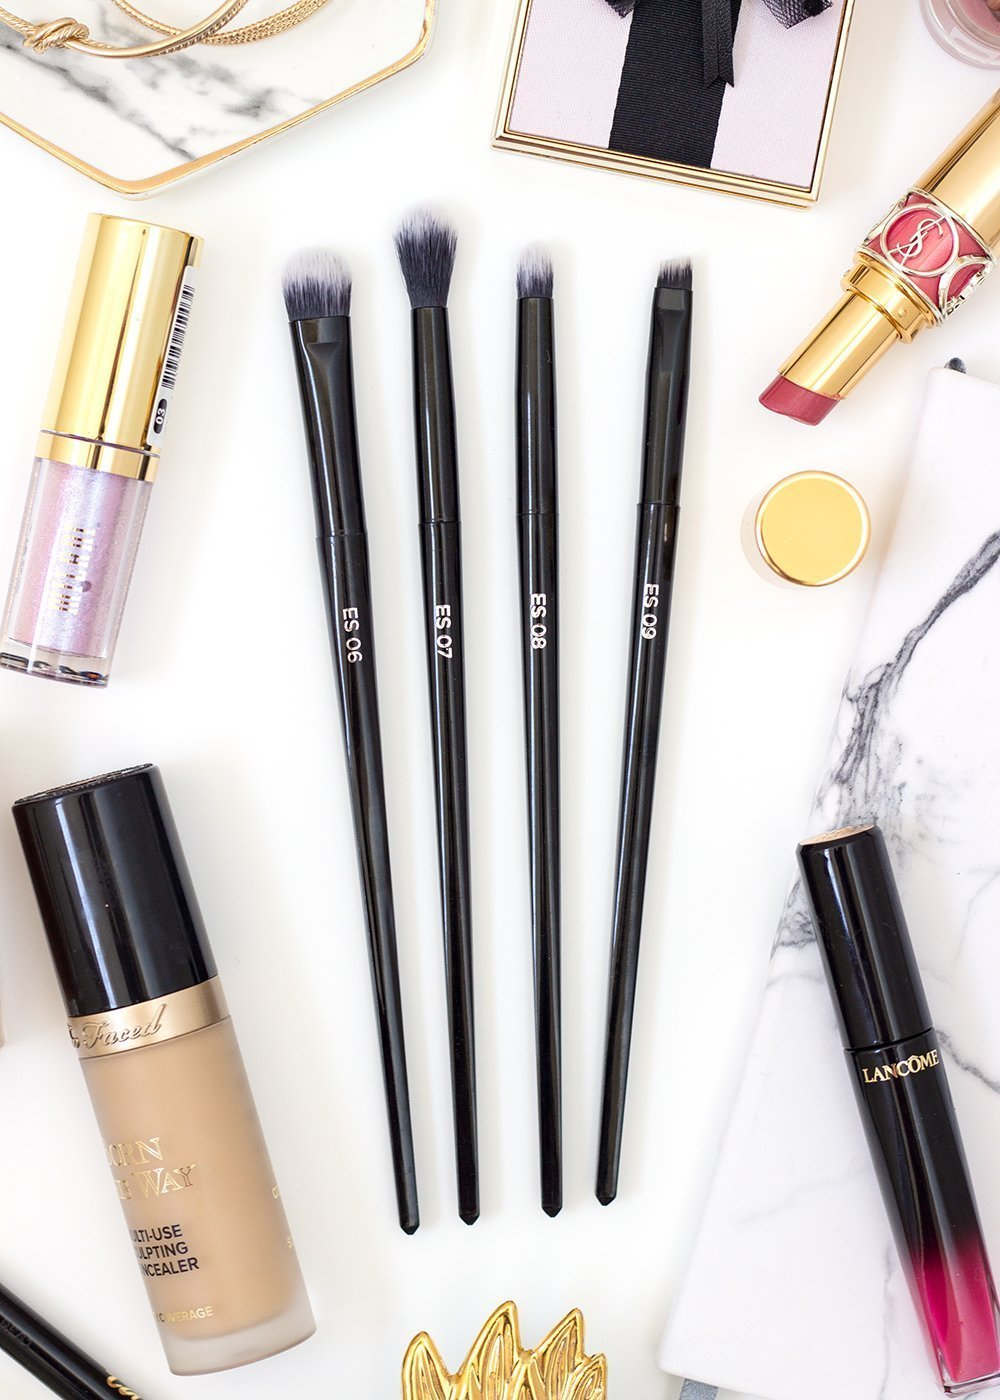 Juno & Co. eye makeup brushes